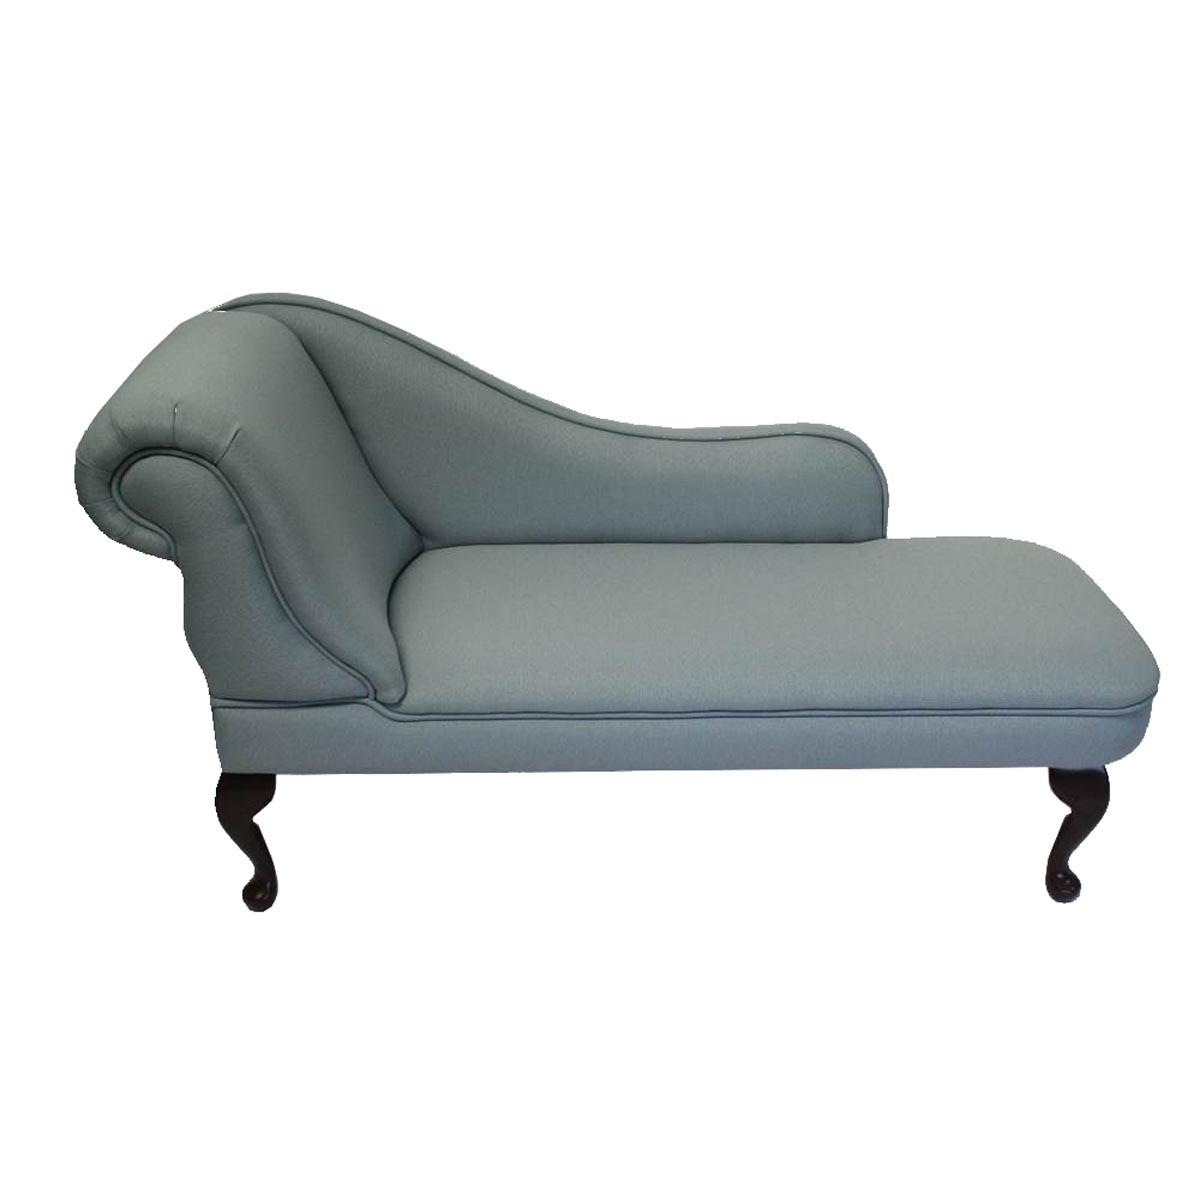 Twain long simply chaise for Chaise longue textilene